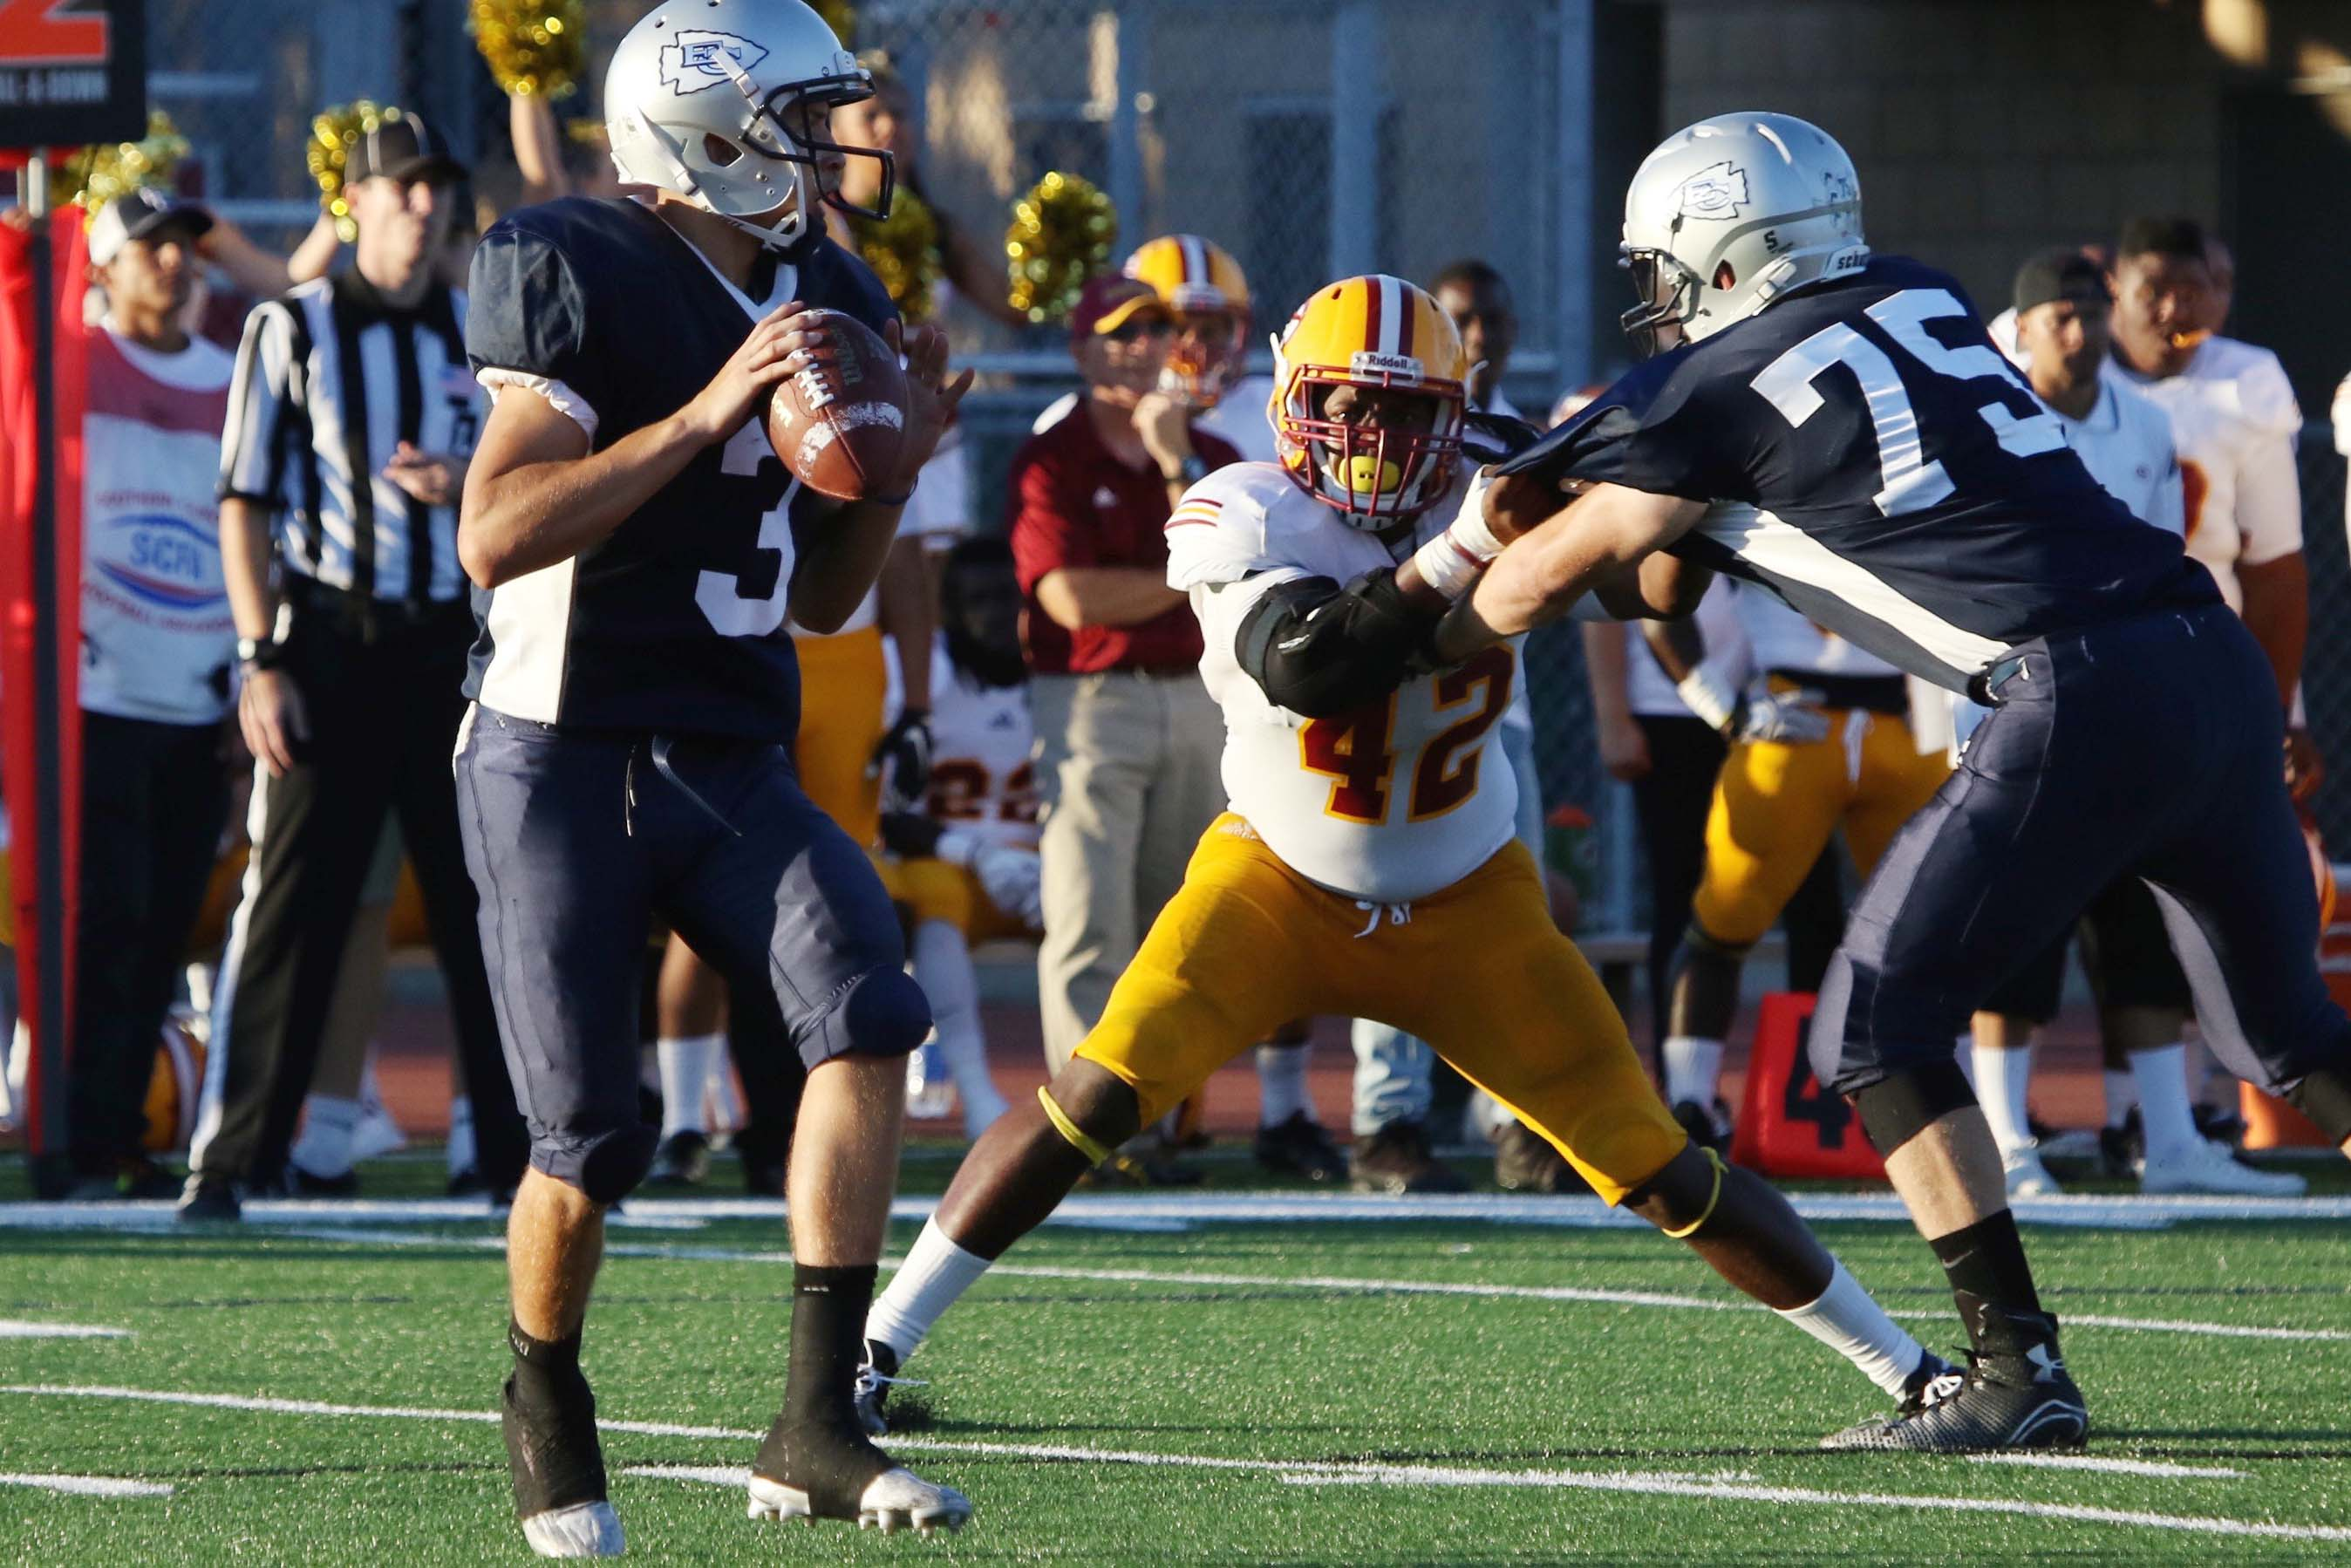 Football team loses to Saddleback in rout